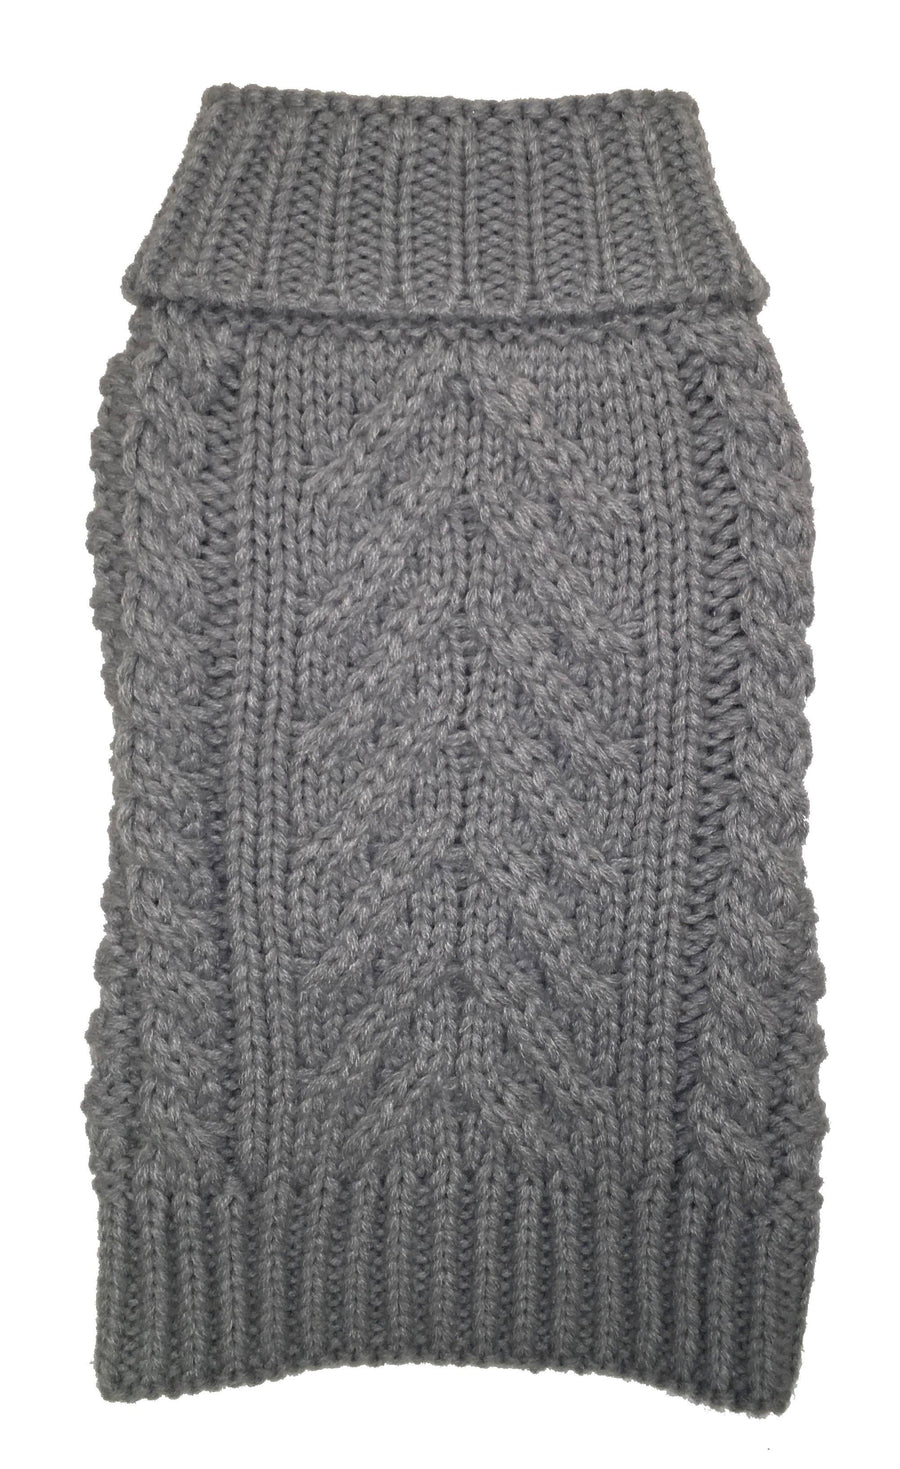 fabdog Pale Grey Cable Knit Dog Sweater